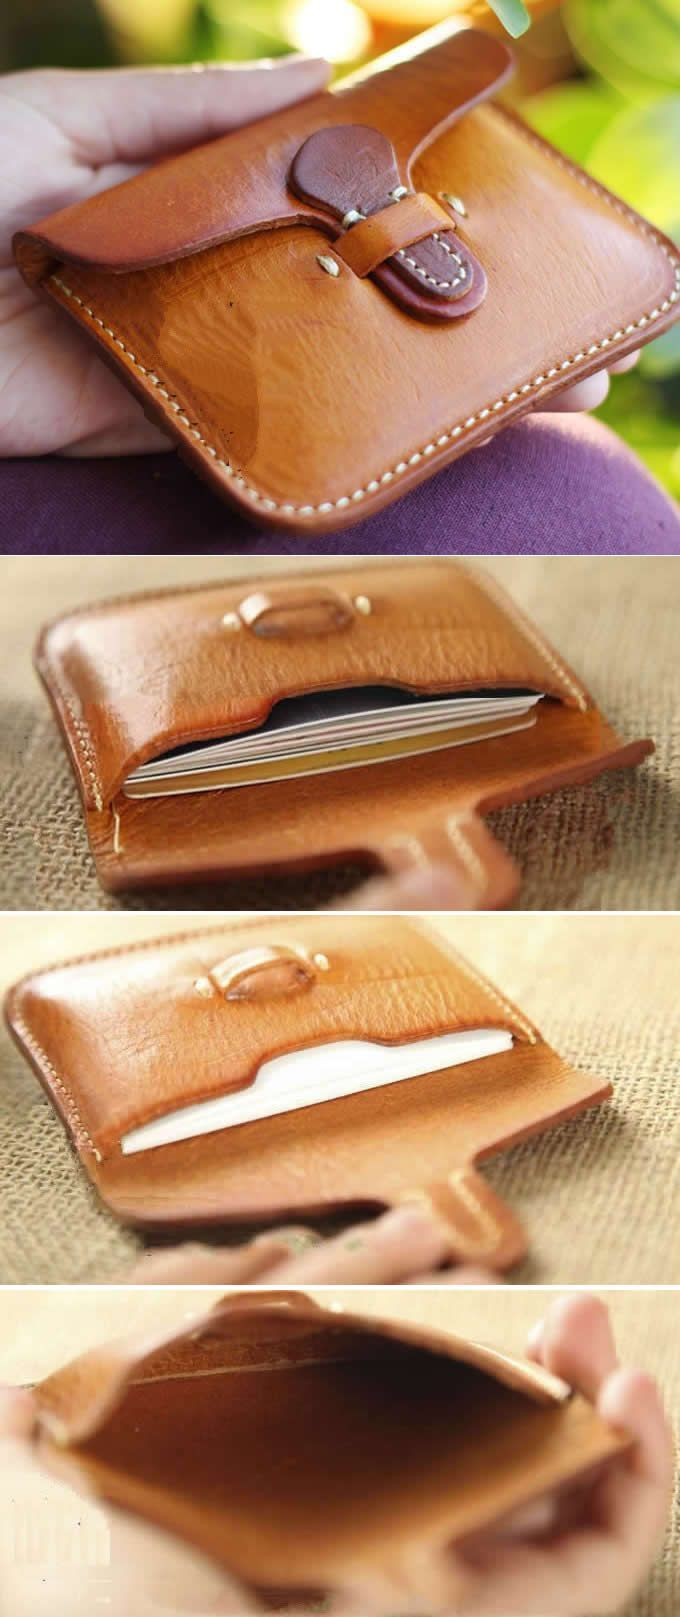 Handmade Leather Business Name Card Credit Card Holder Case Sr Leather Business Card Holder Leather Handmade Card Holder Leather